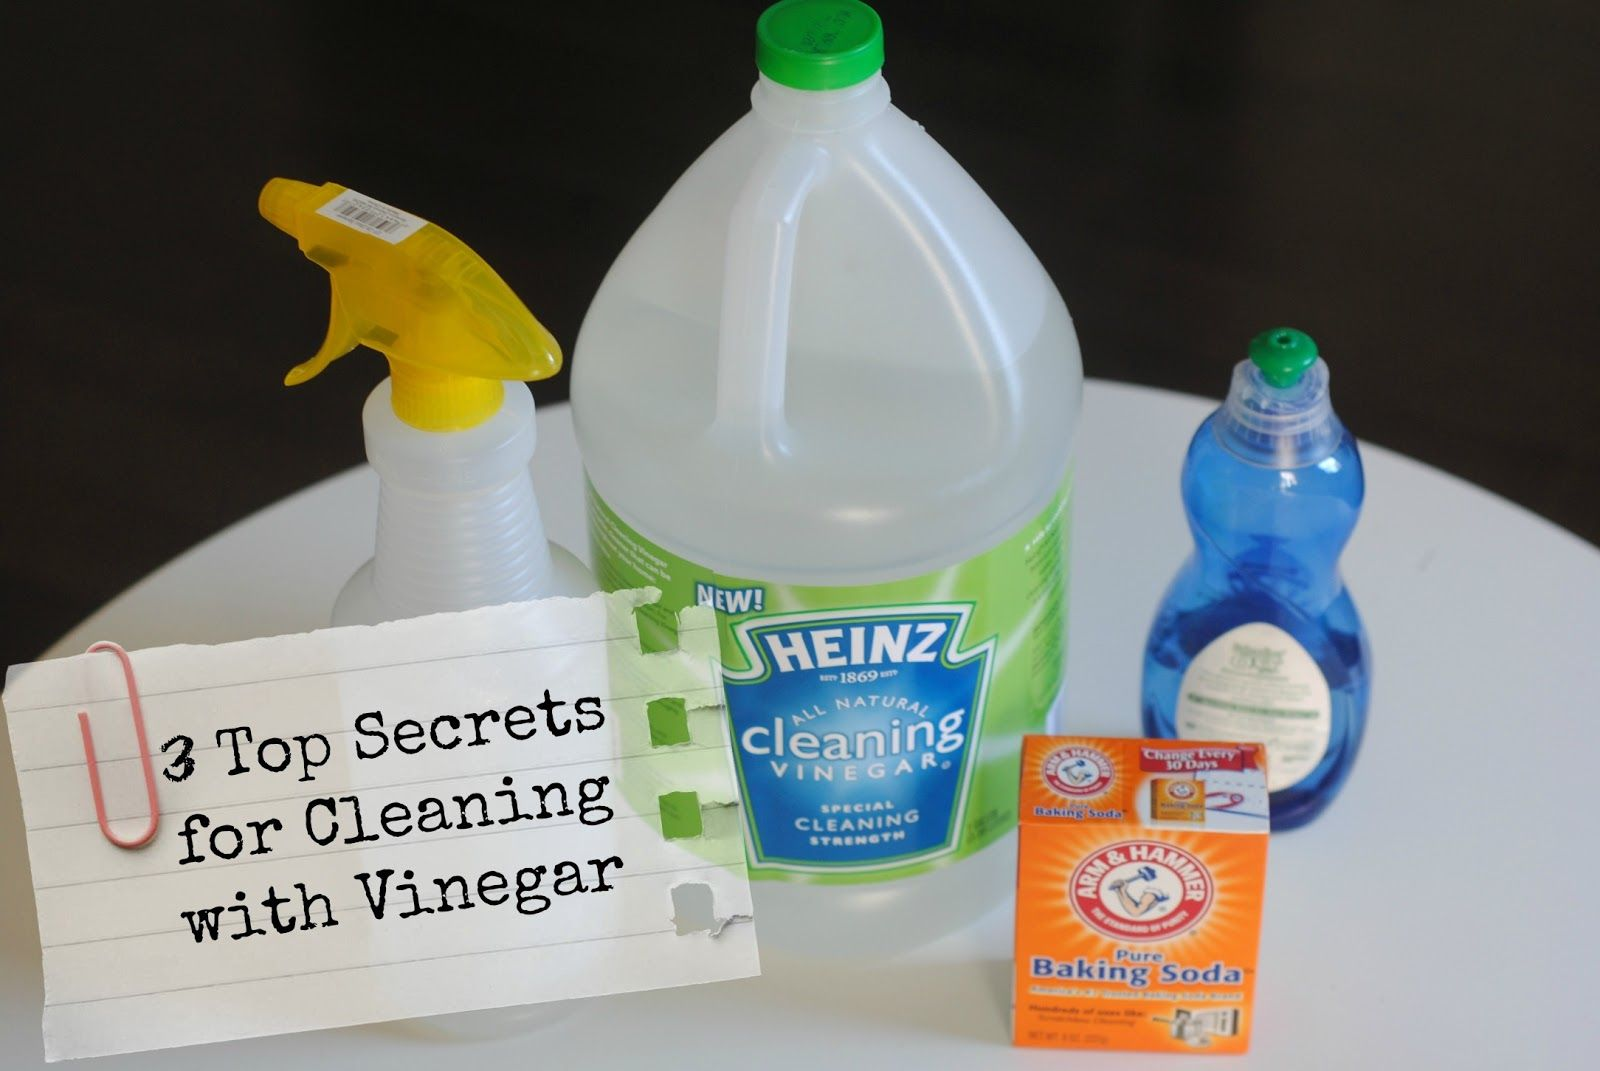 3 Top Secret Tricks For Cleaning With Vinegar Vinegar Cleaning Homemade Grout Cleaner Cleaning Hacks